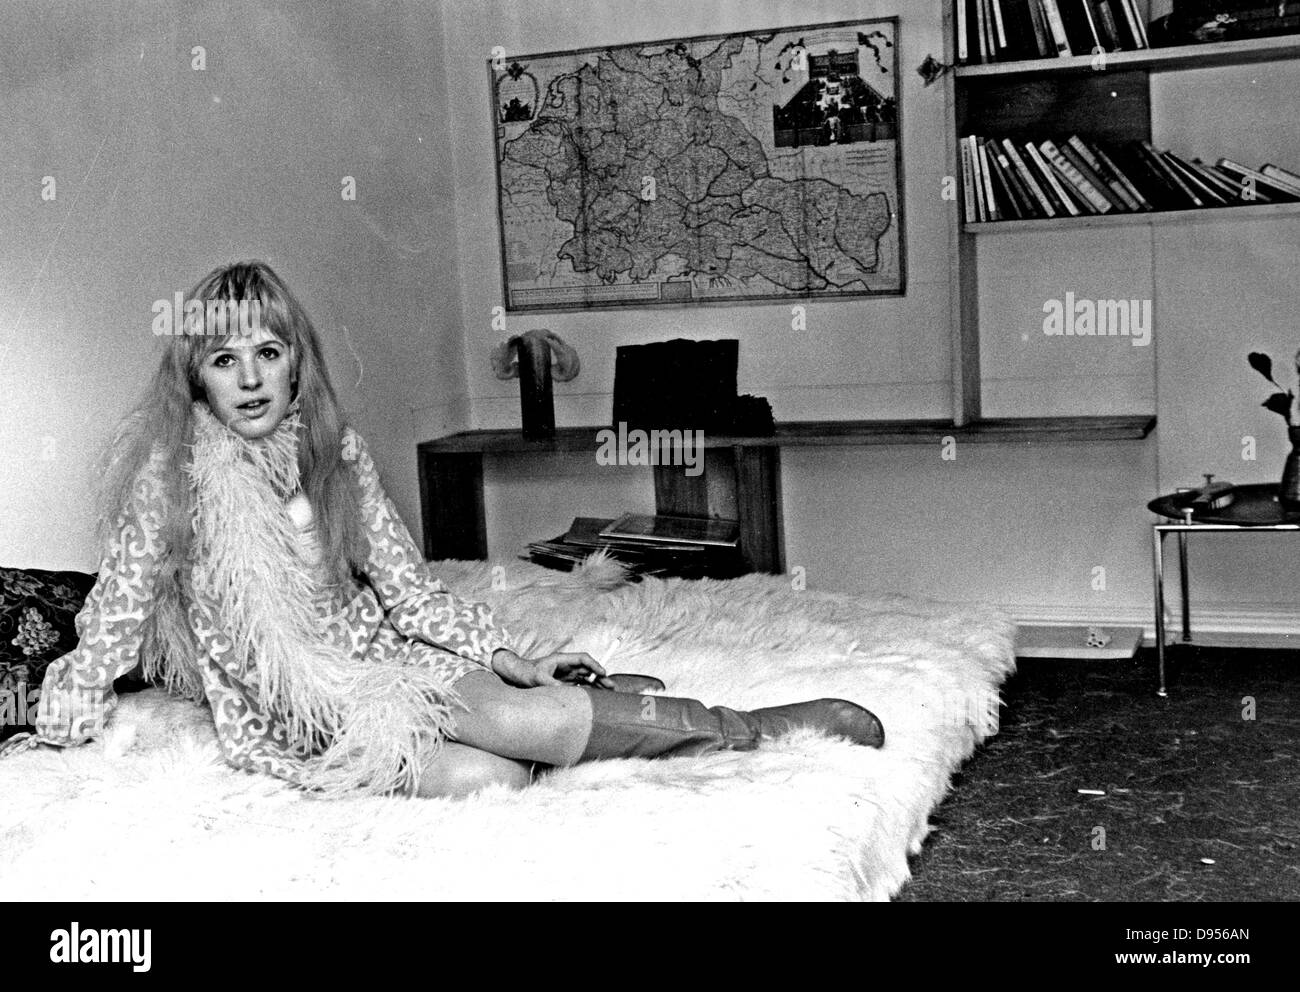 Pop singer 1960s stock photos pop singer 1960s stock images page marianne faithfull uk pop singer and film actress at her apartment in lennox gardenslondon altavistaventures